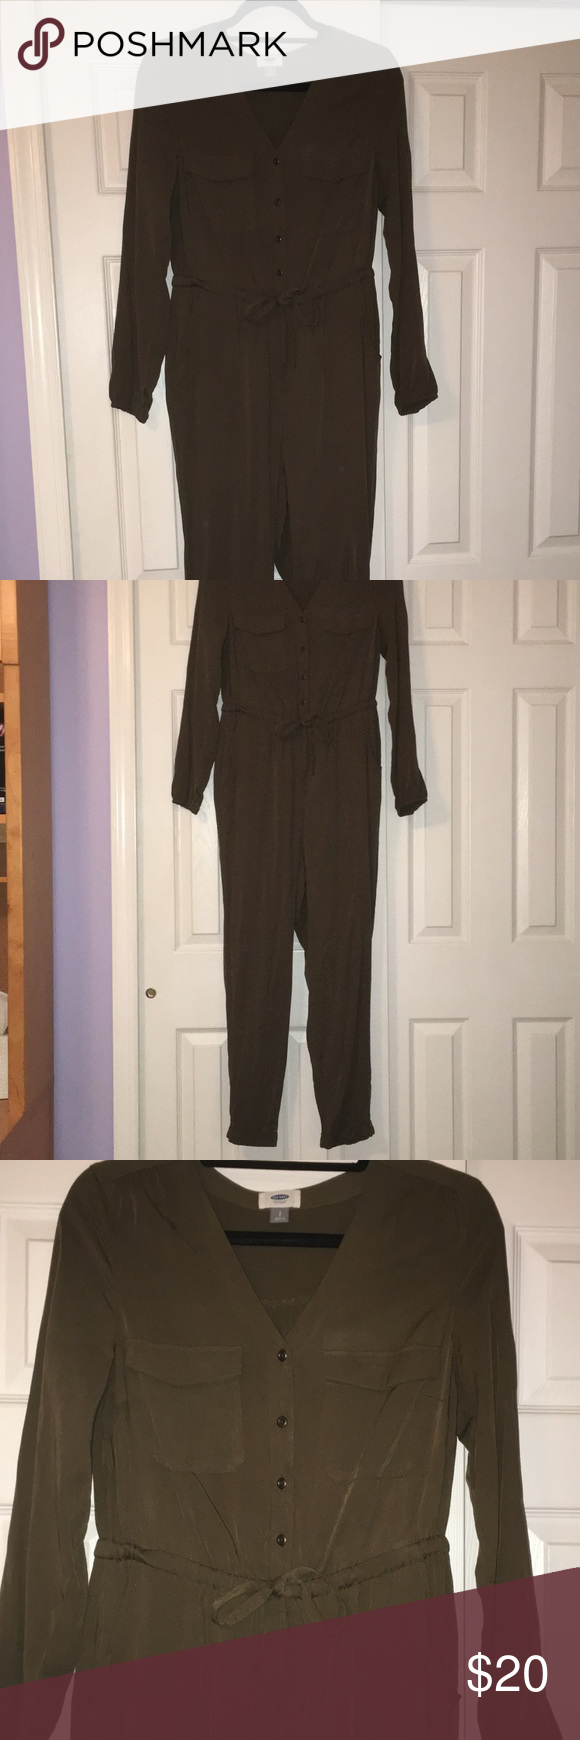 Old Navy Olive Jumpsuit This jumpsuit has never been worn, and is perfect for early fall! It can be dressed up with wedges or worn casually and adding fun jewelry would make this a really cute outfit! I will iron this before shipping! Old Navy Pants Jumpsuits & Rompers